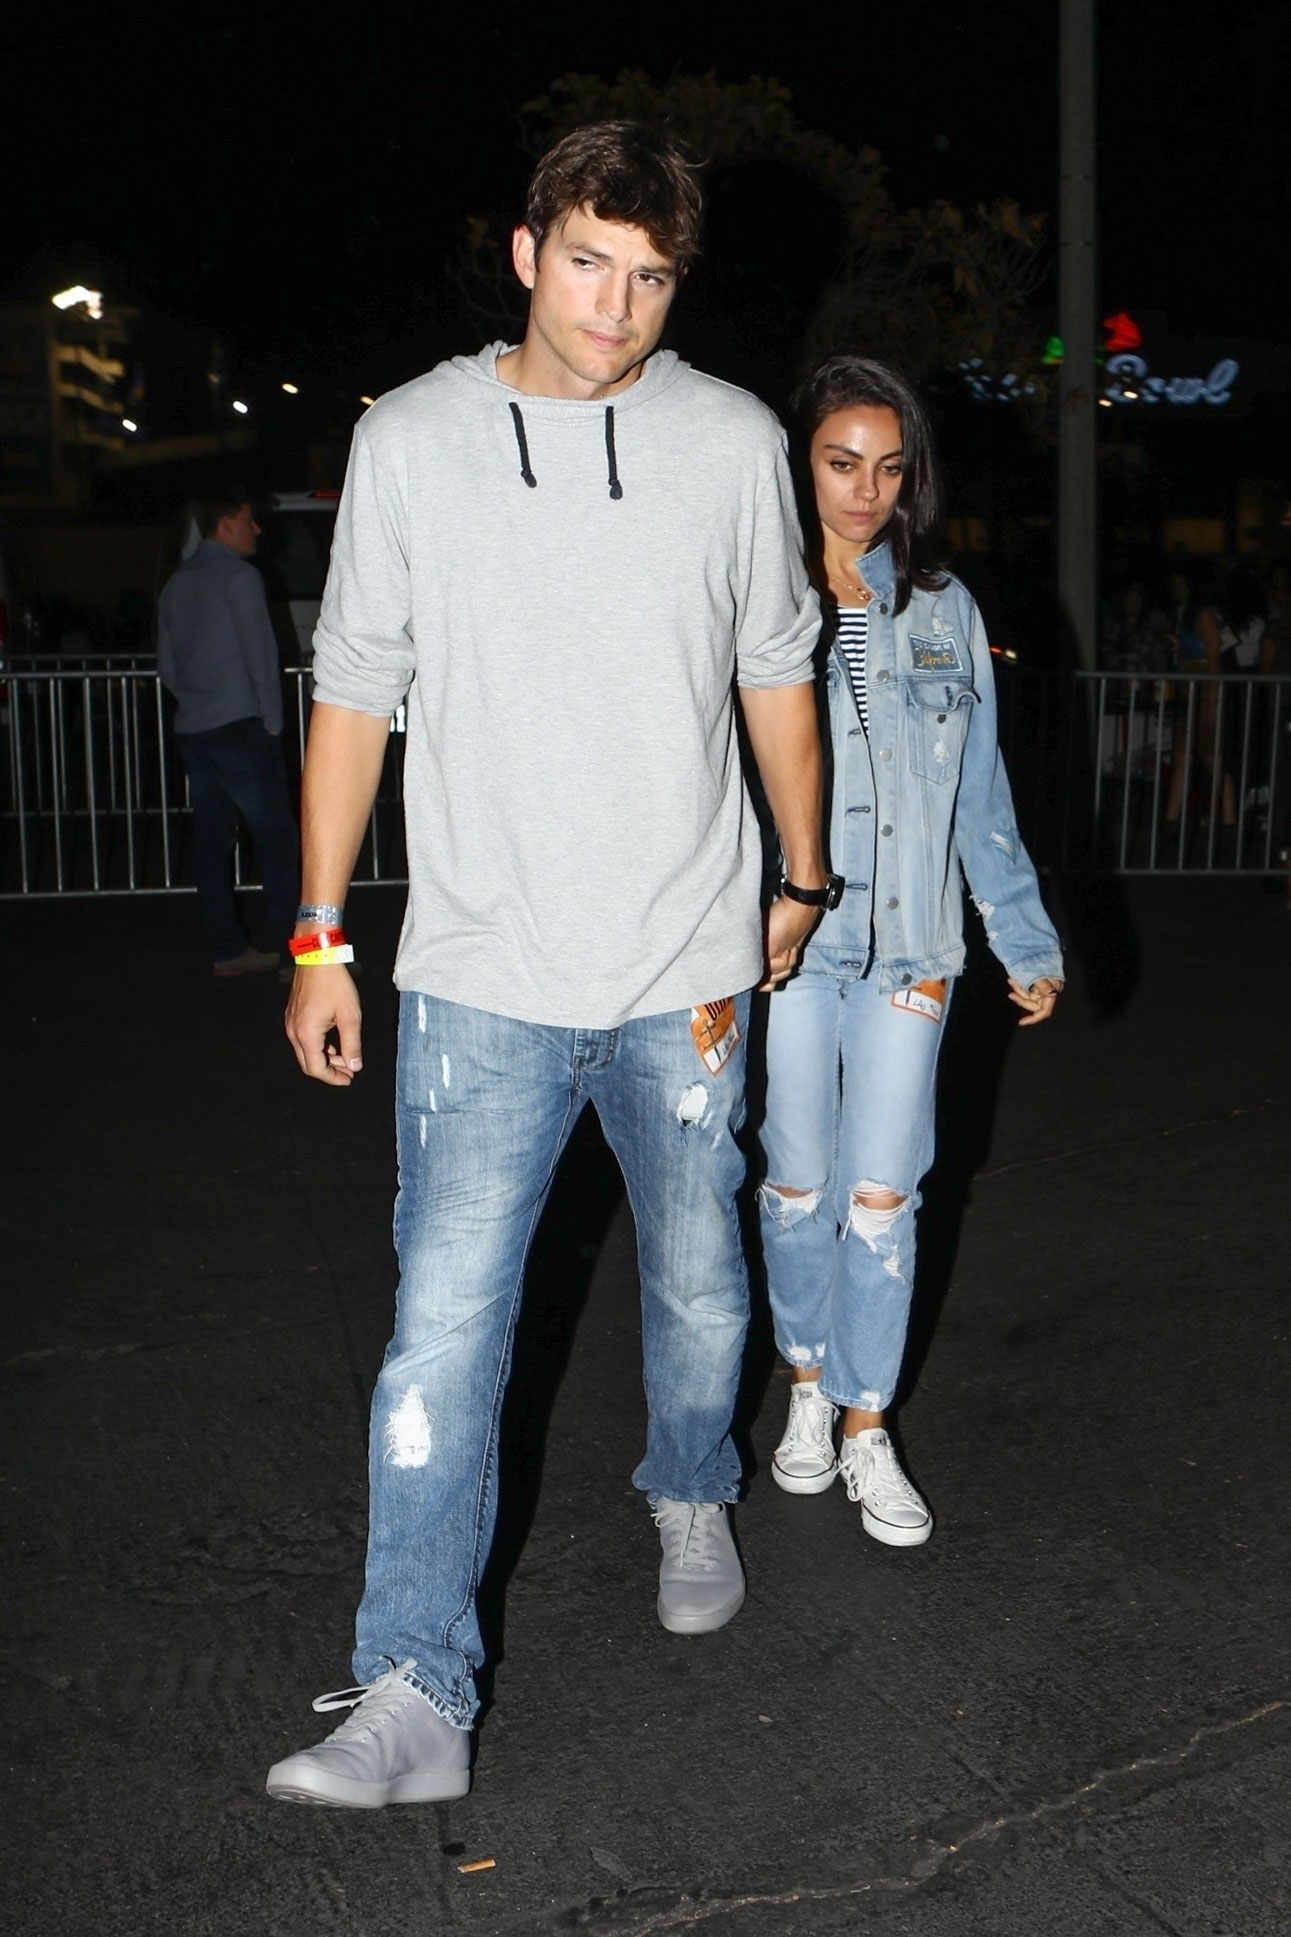 Mila Kunis And Ashton Kutcher Matched In Denim Outfits